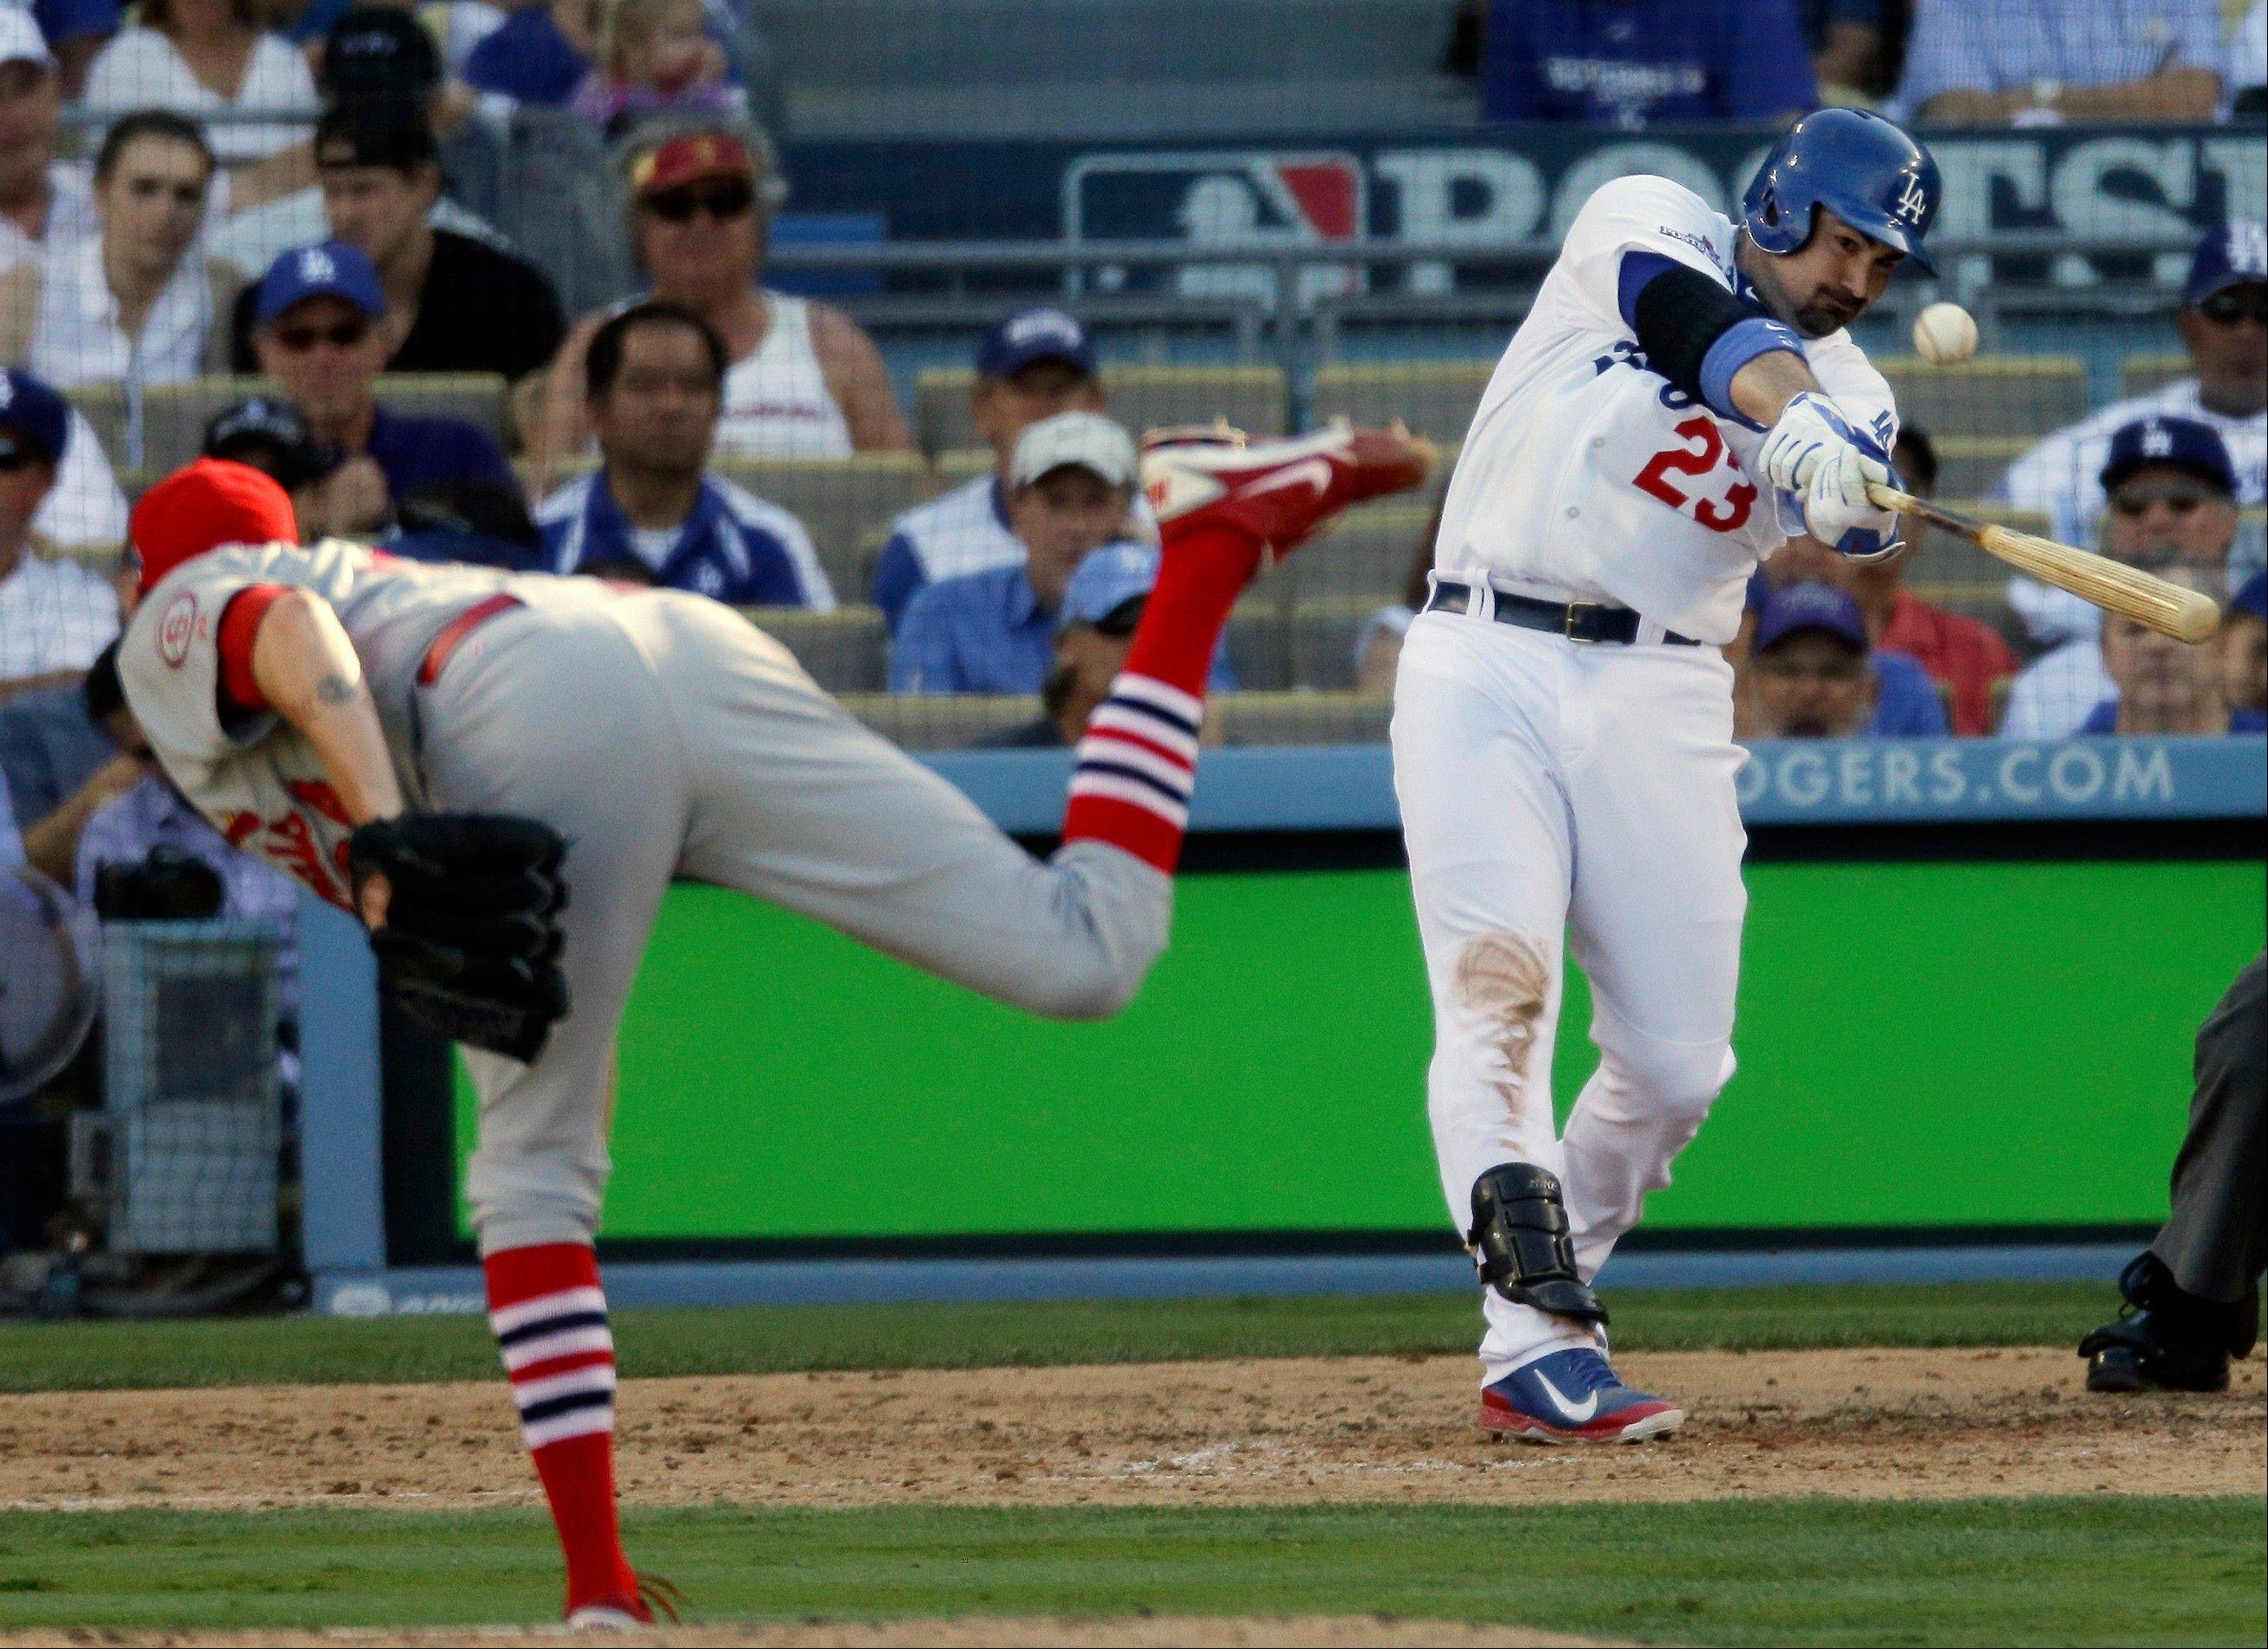 The Dodgers' Adrian Gonzalez hits a home run off St. Louis Cardinals relief pitcher John Axford during the eighth inning.